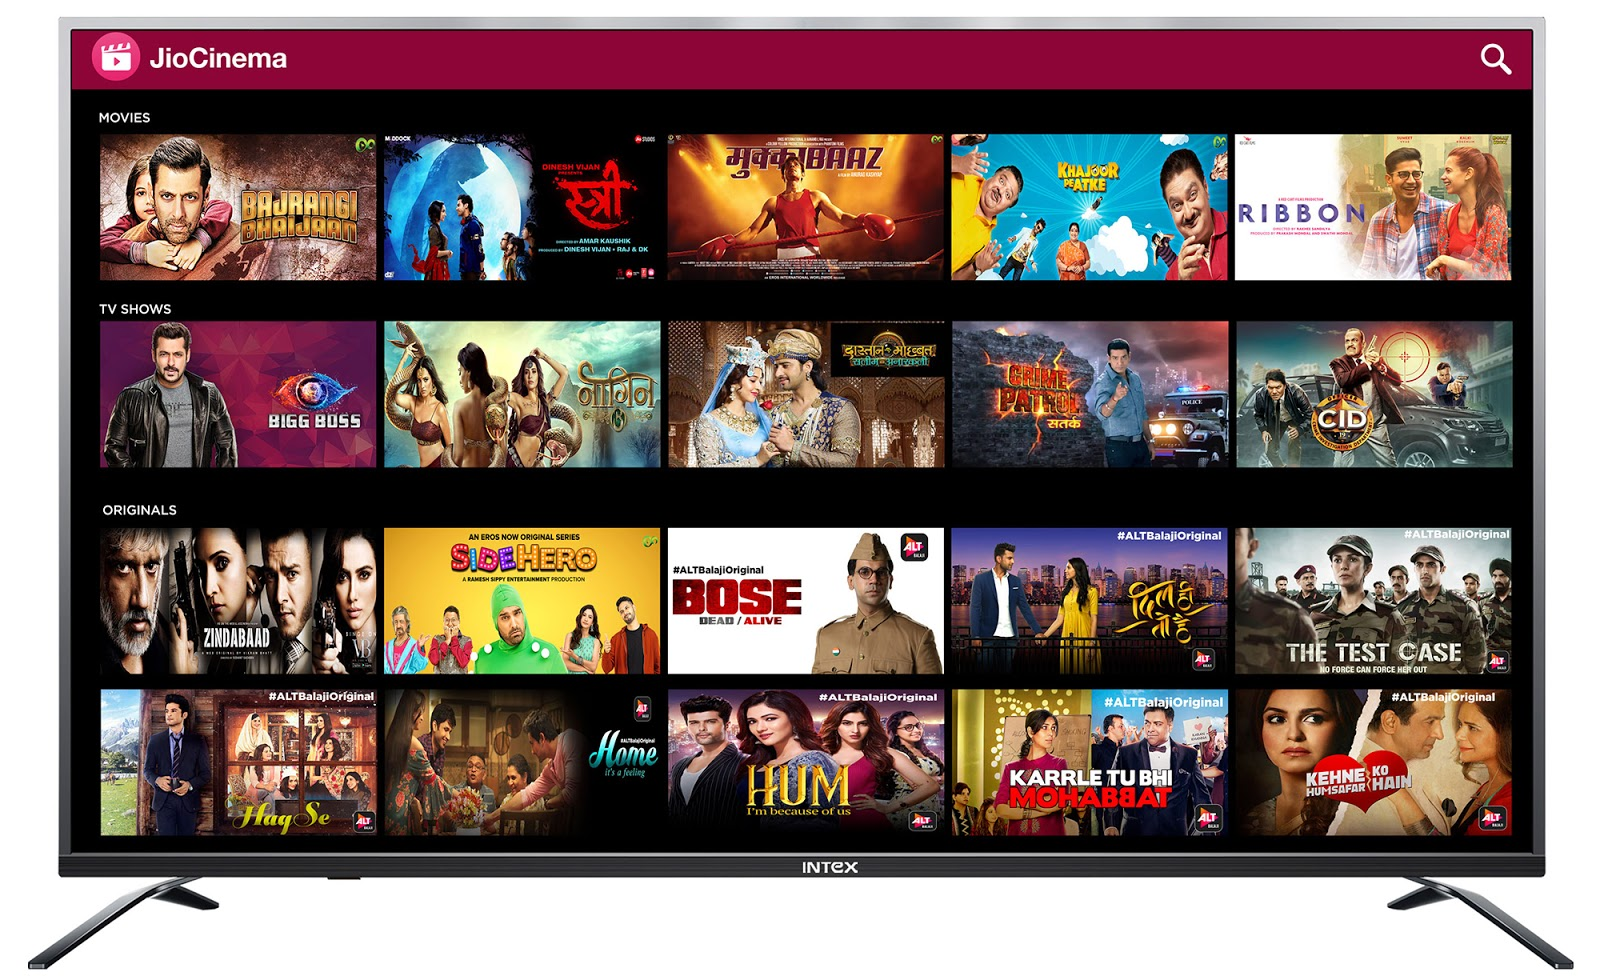 Intex Launches Range of JioCinema Ready 4K UHD Smart LED TVs